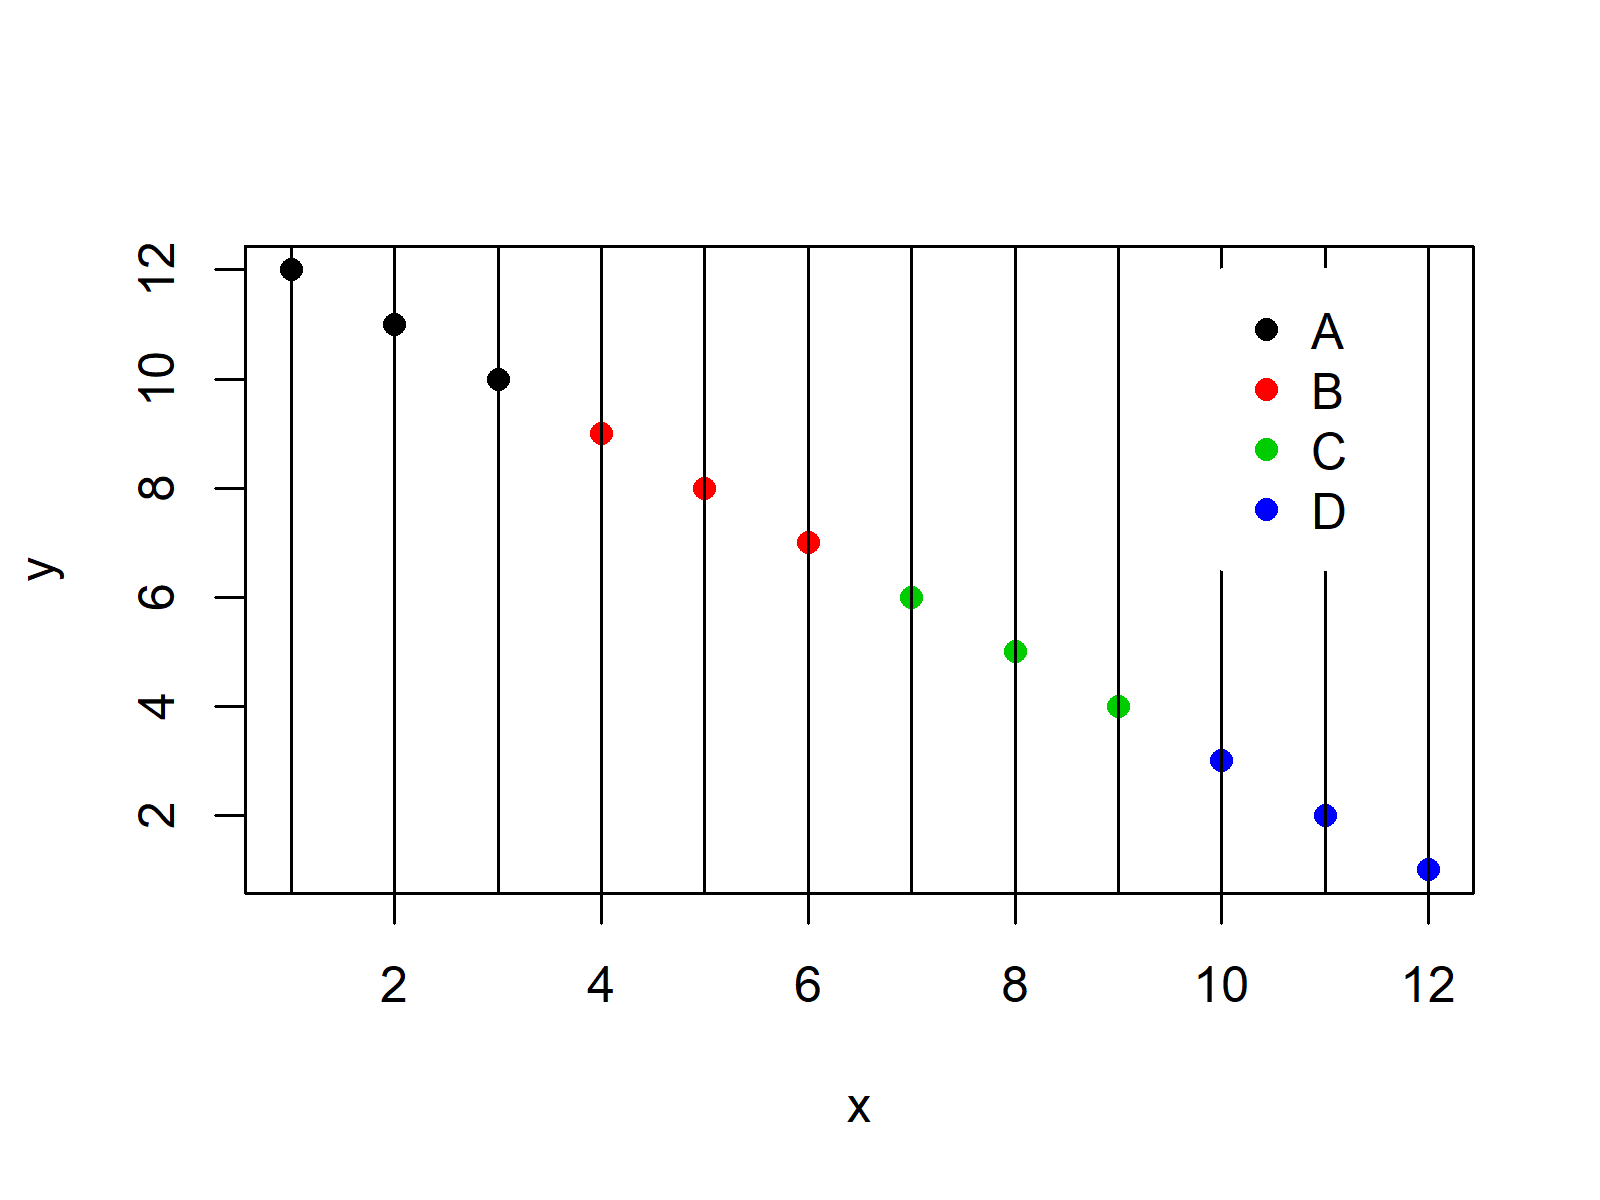 r graph figure 2 plot legend without border and white background r